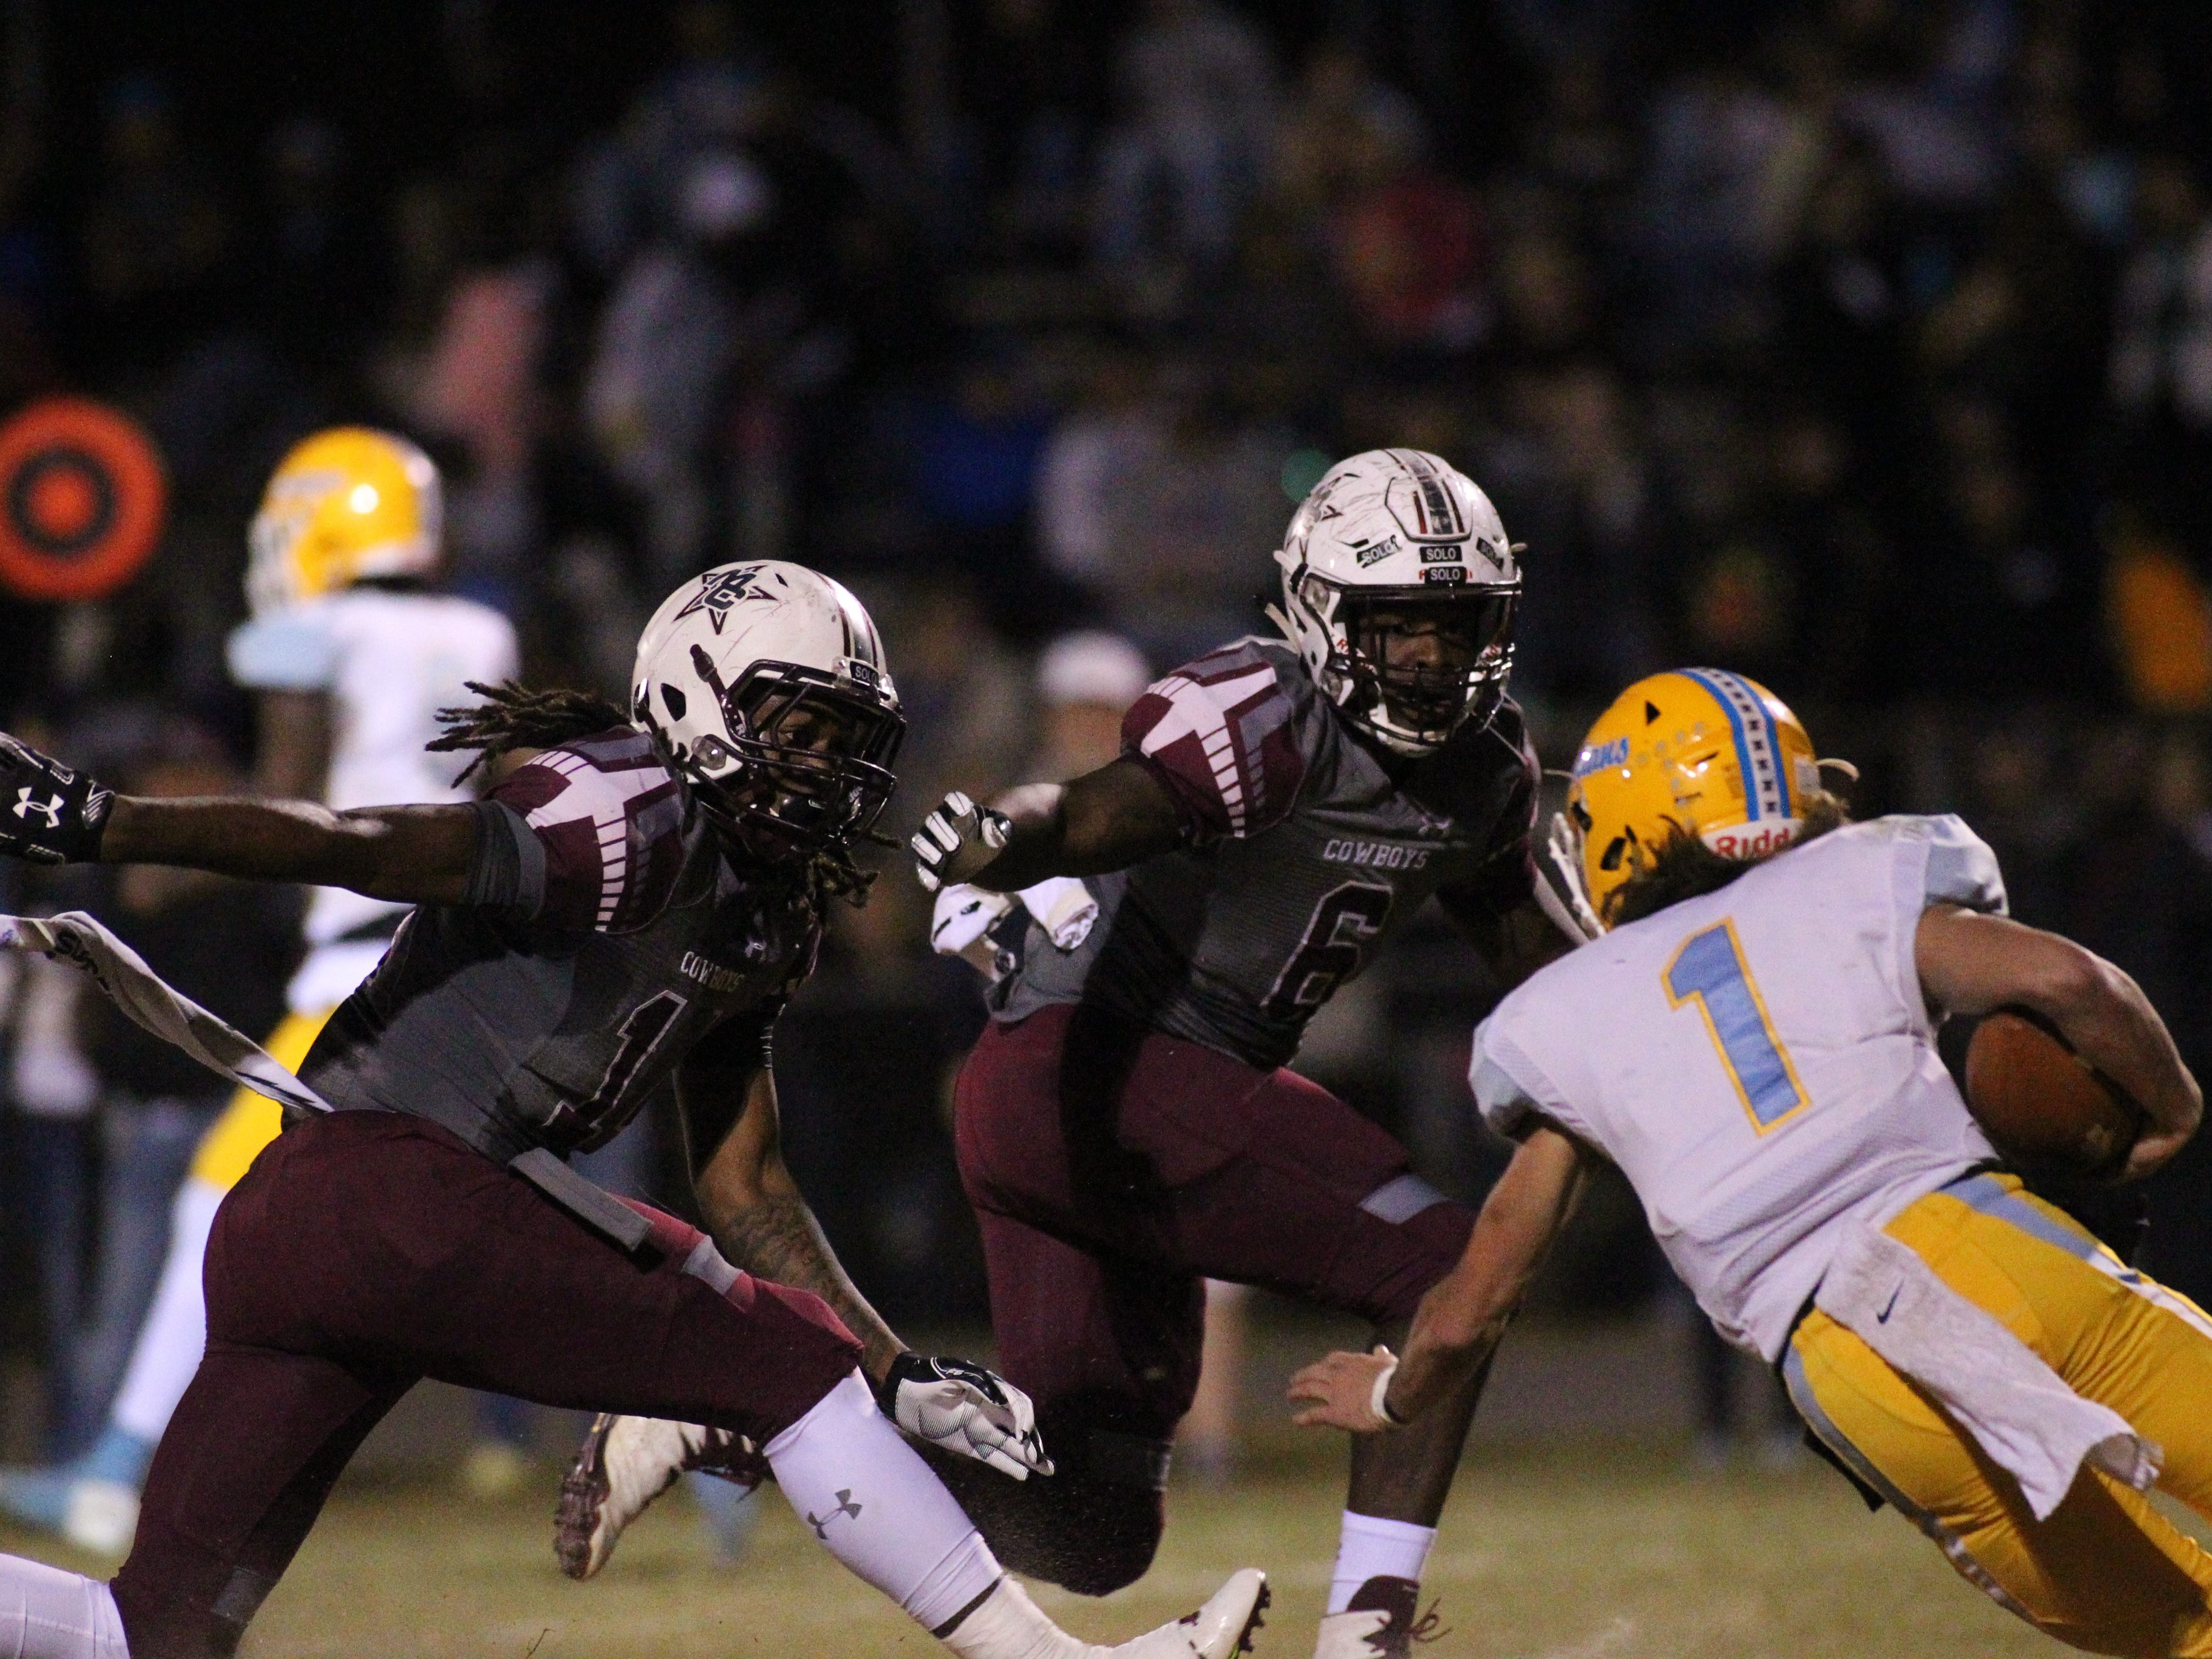 Chiefland quarterback Ty Corbin can't escape Madison County's Melvin Brown (14) and Patrick Hampton (6) as Madison County beat Chiefland 49-14 in a Region 3-1A final at Boot Hill Stadium on Friday, Nov. 23, 2018.